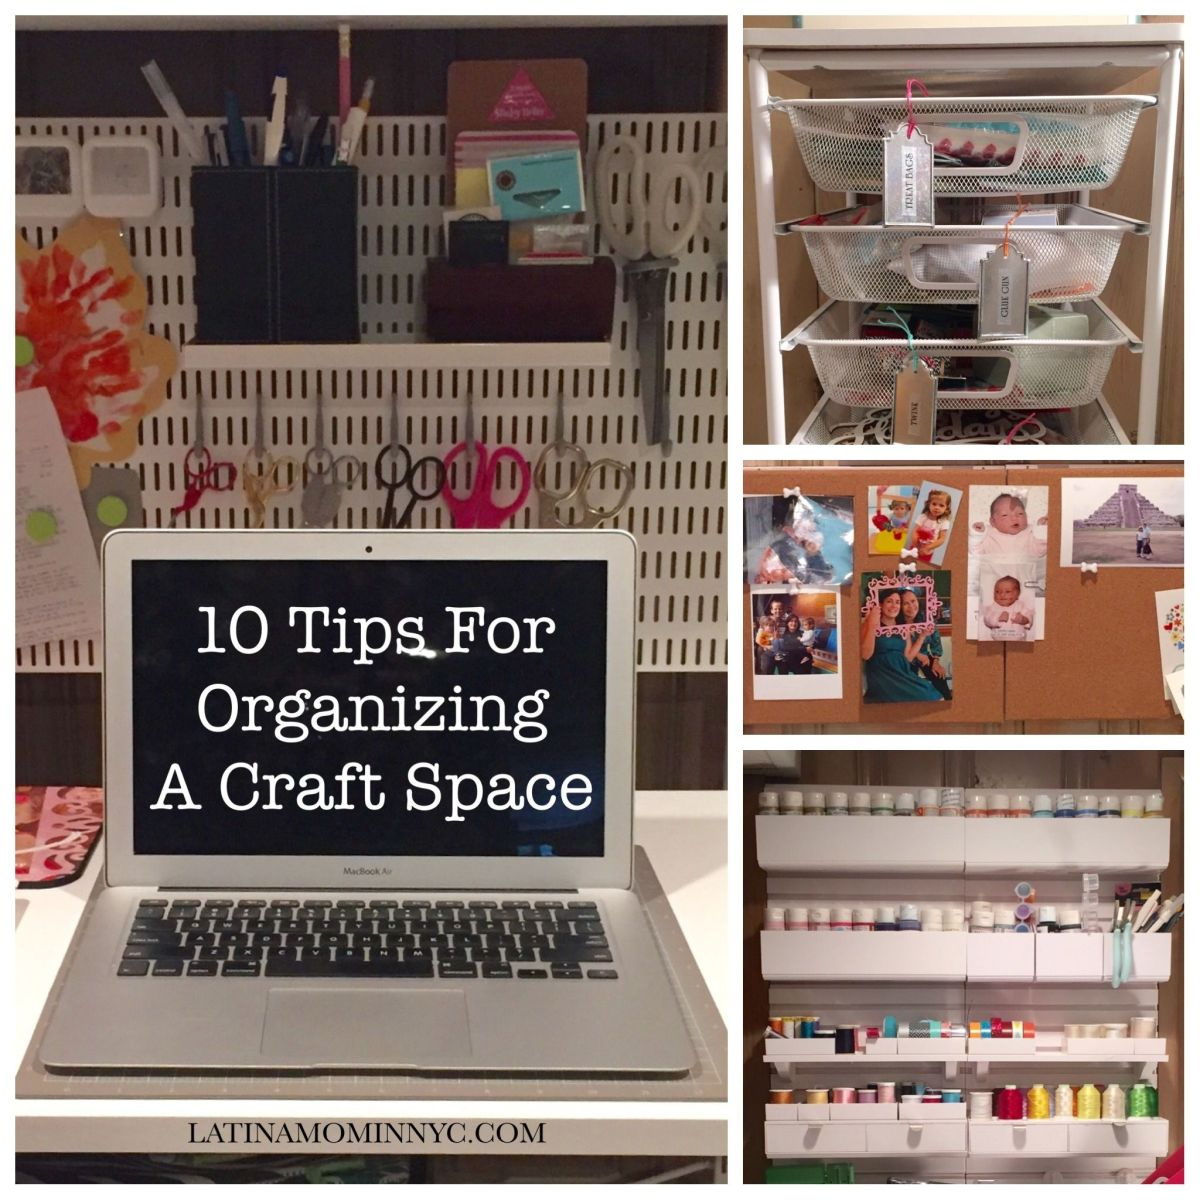 10 Tips for Organizing Your Craft Space